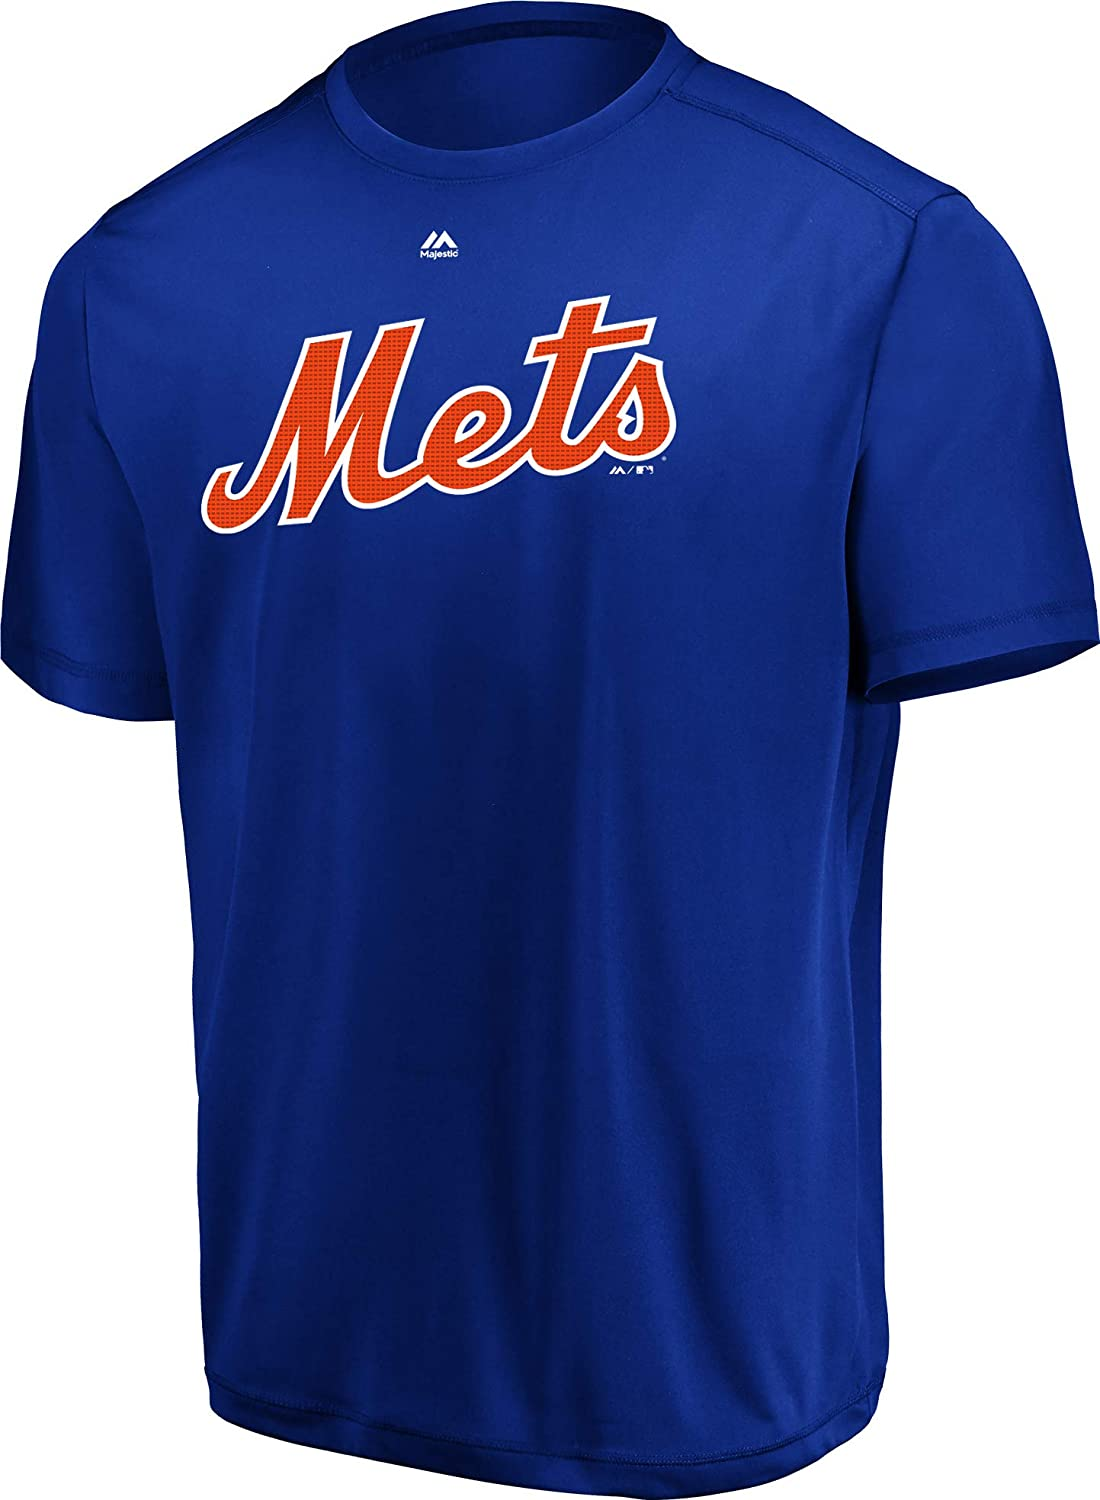 New York Mets Adult 3X Licensed Replica T-Shirt Jersey Royal Blue